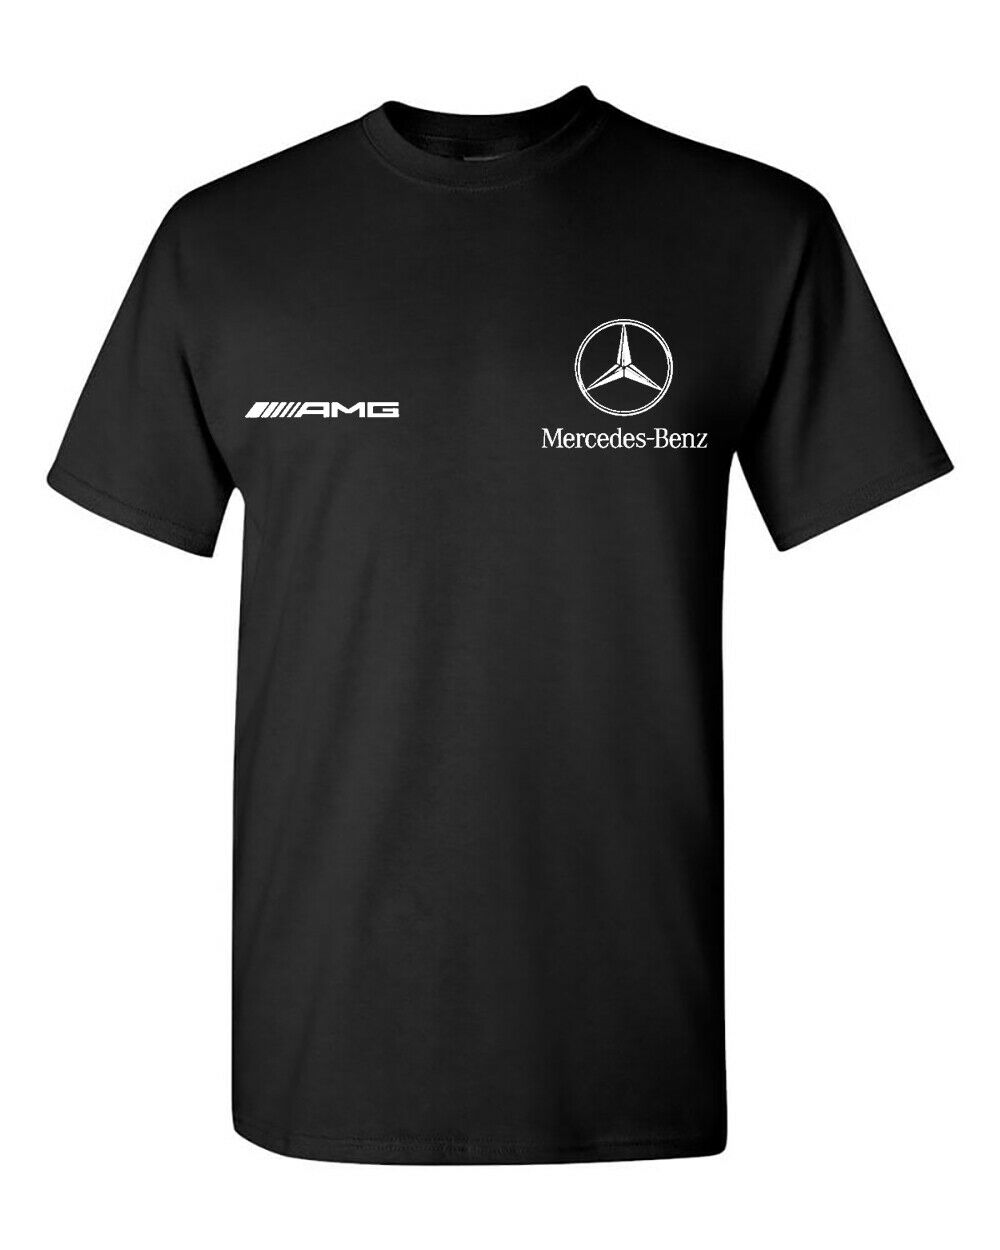 Mercedes T-Shirt T-Shirt F1 Racing Adult Gifts For Him Unisex Size S-3XL